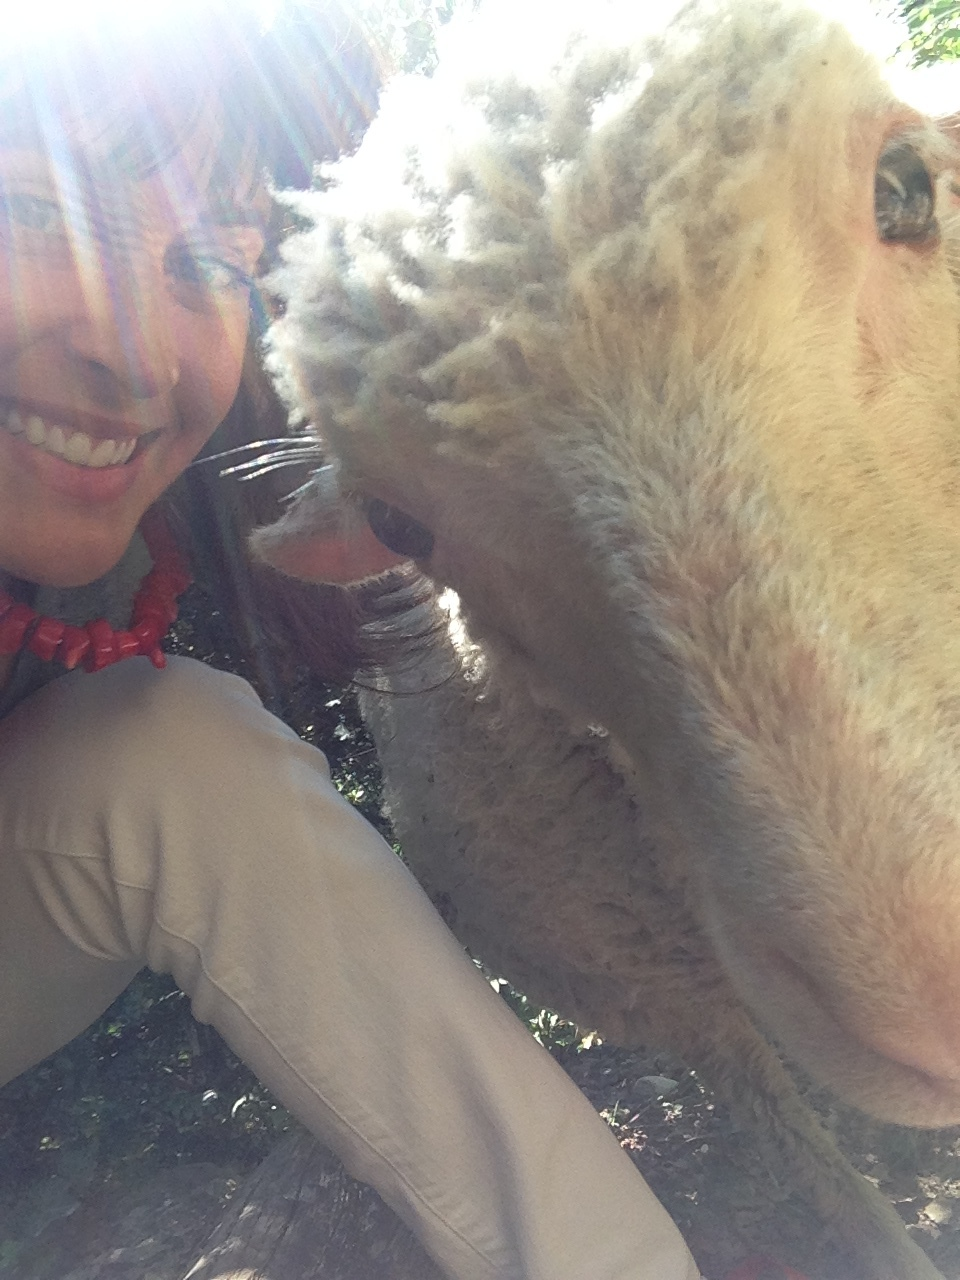 Selfie with a Sheep